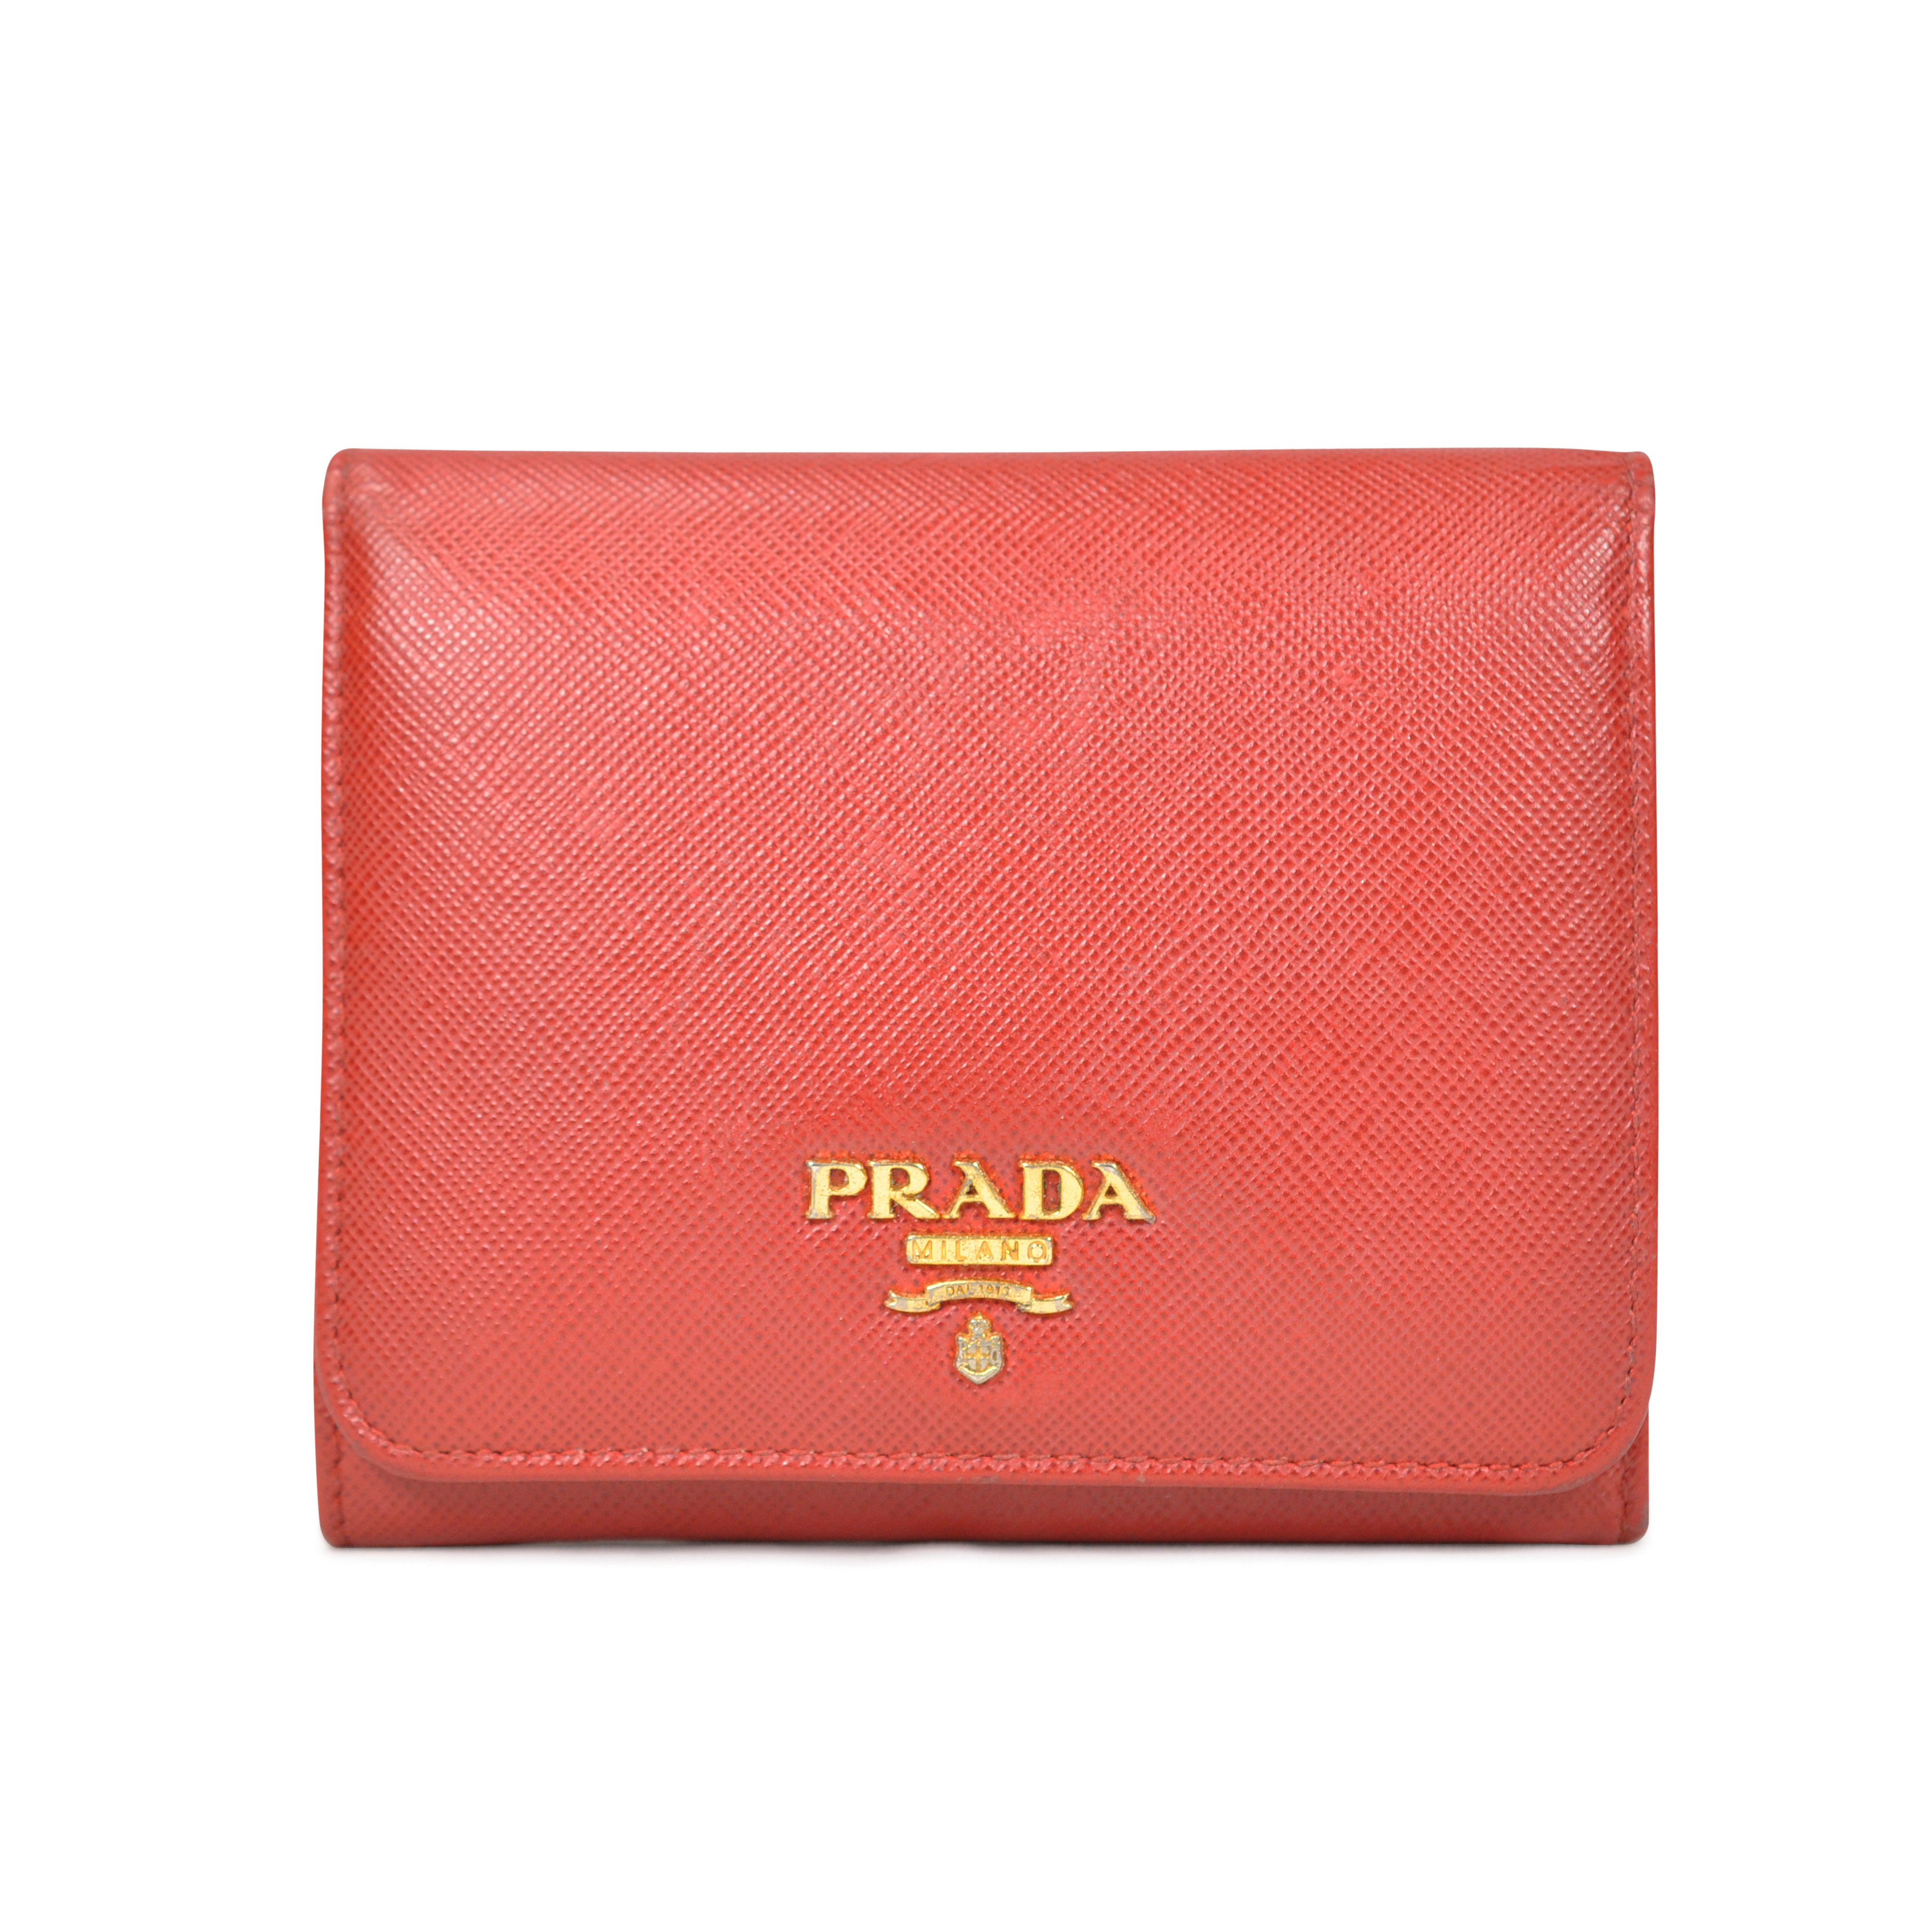 44a34b7134b471 Authentic Second Hand Prada Saffiano Wallet (PSS-059-00004) | THE FIFTH  COLLECTION